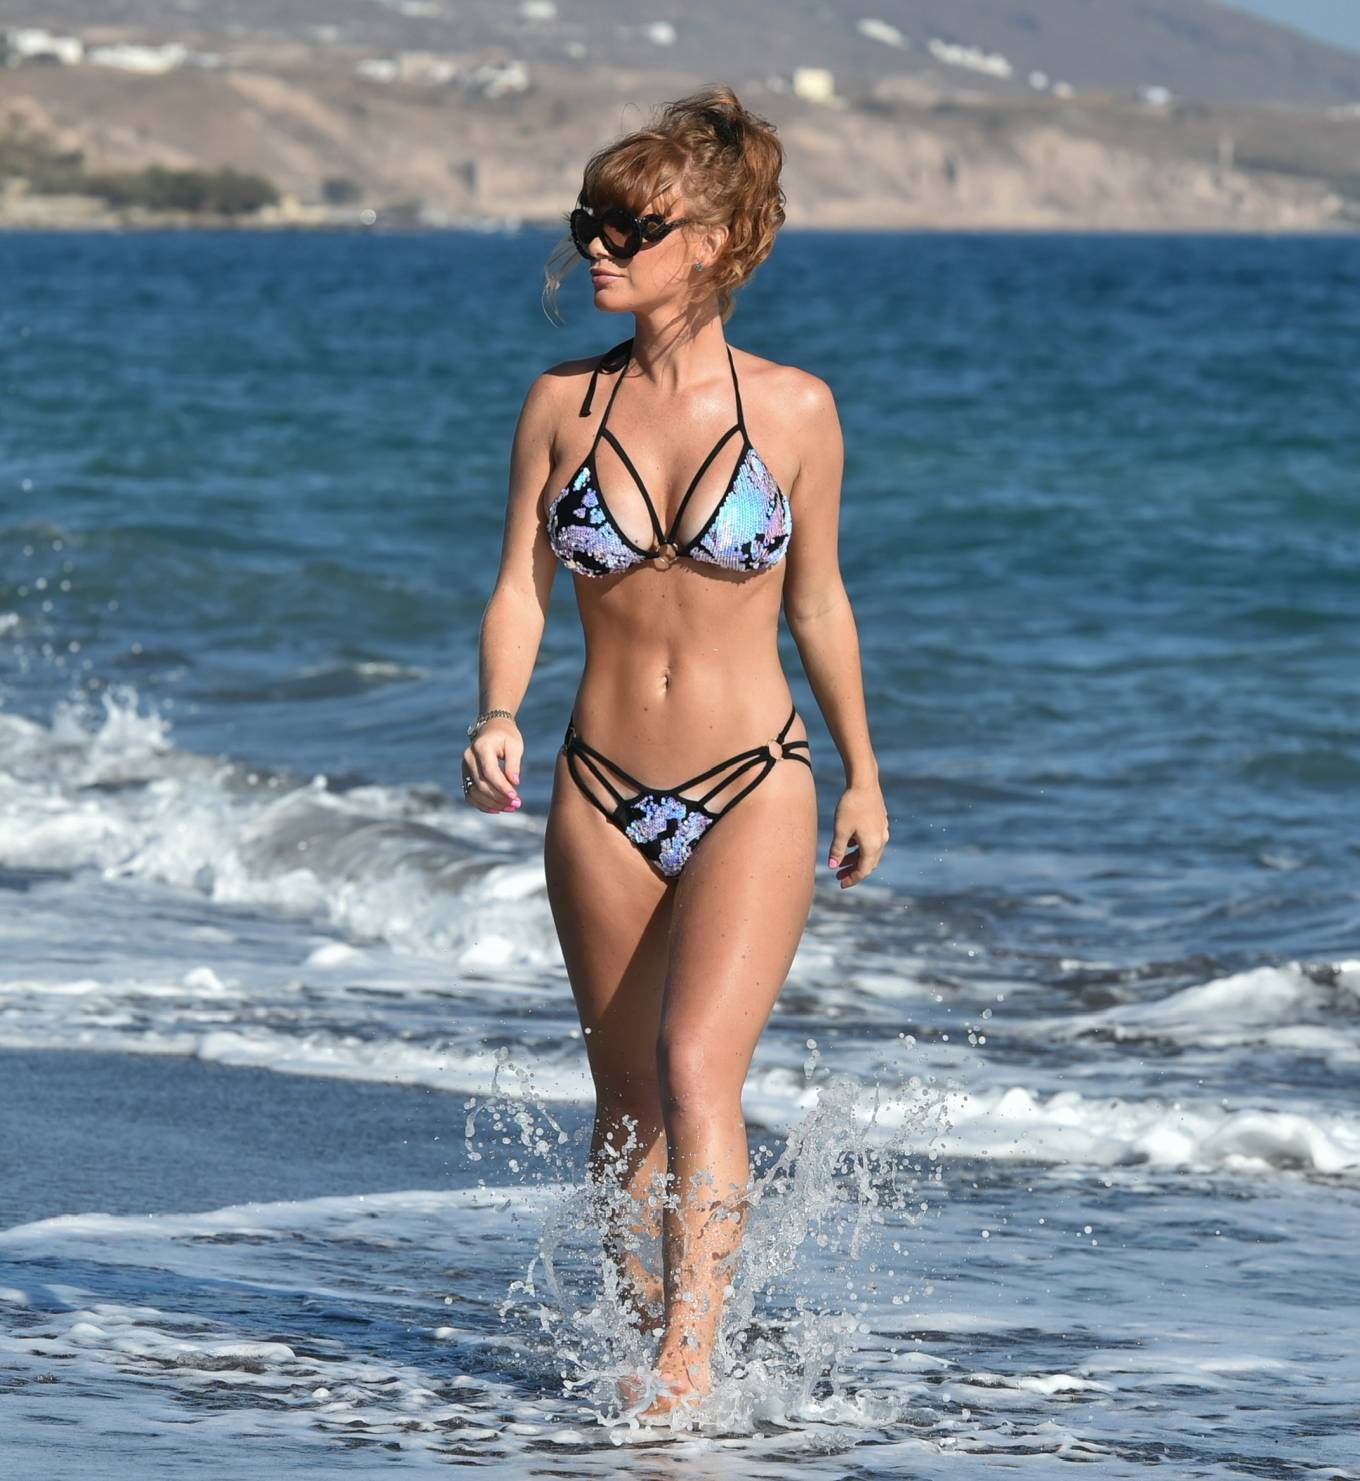 Summer Monteys-Fullam - Spotted in a bikini on the beach in Tenerife